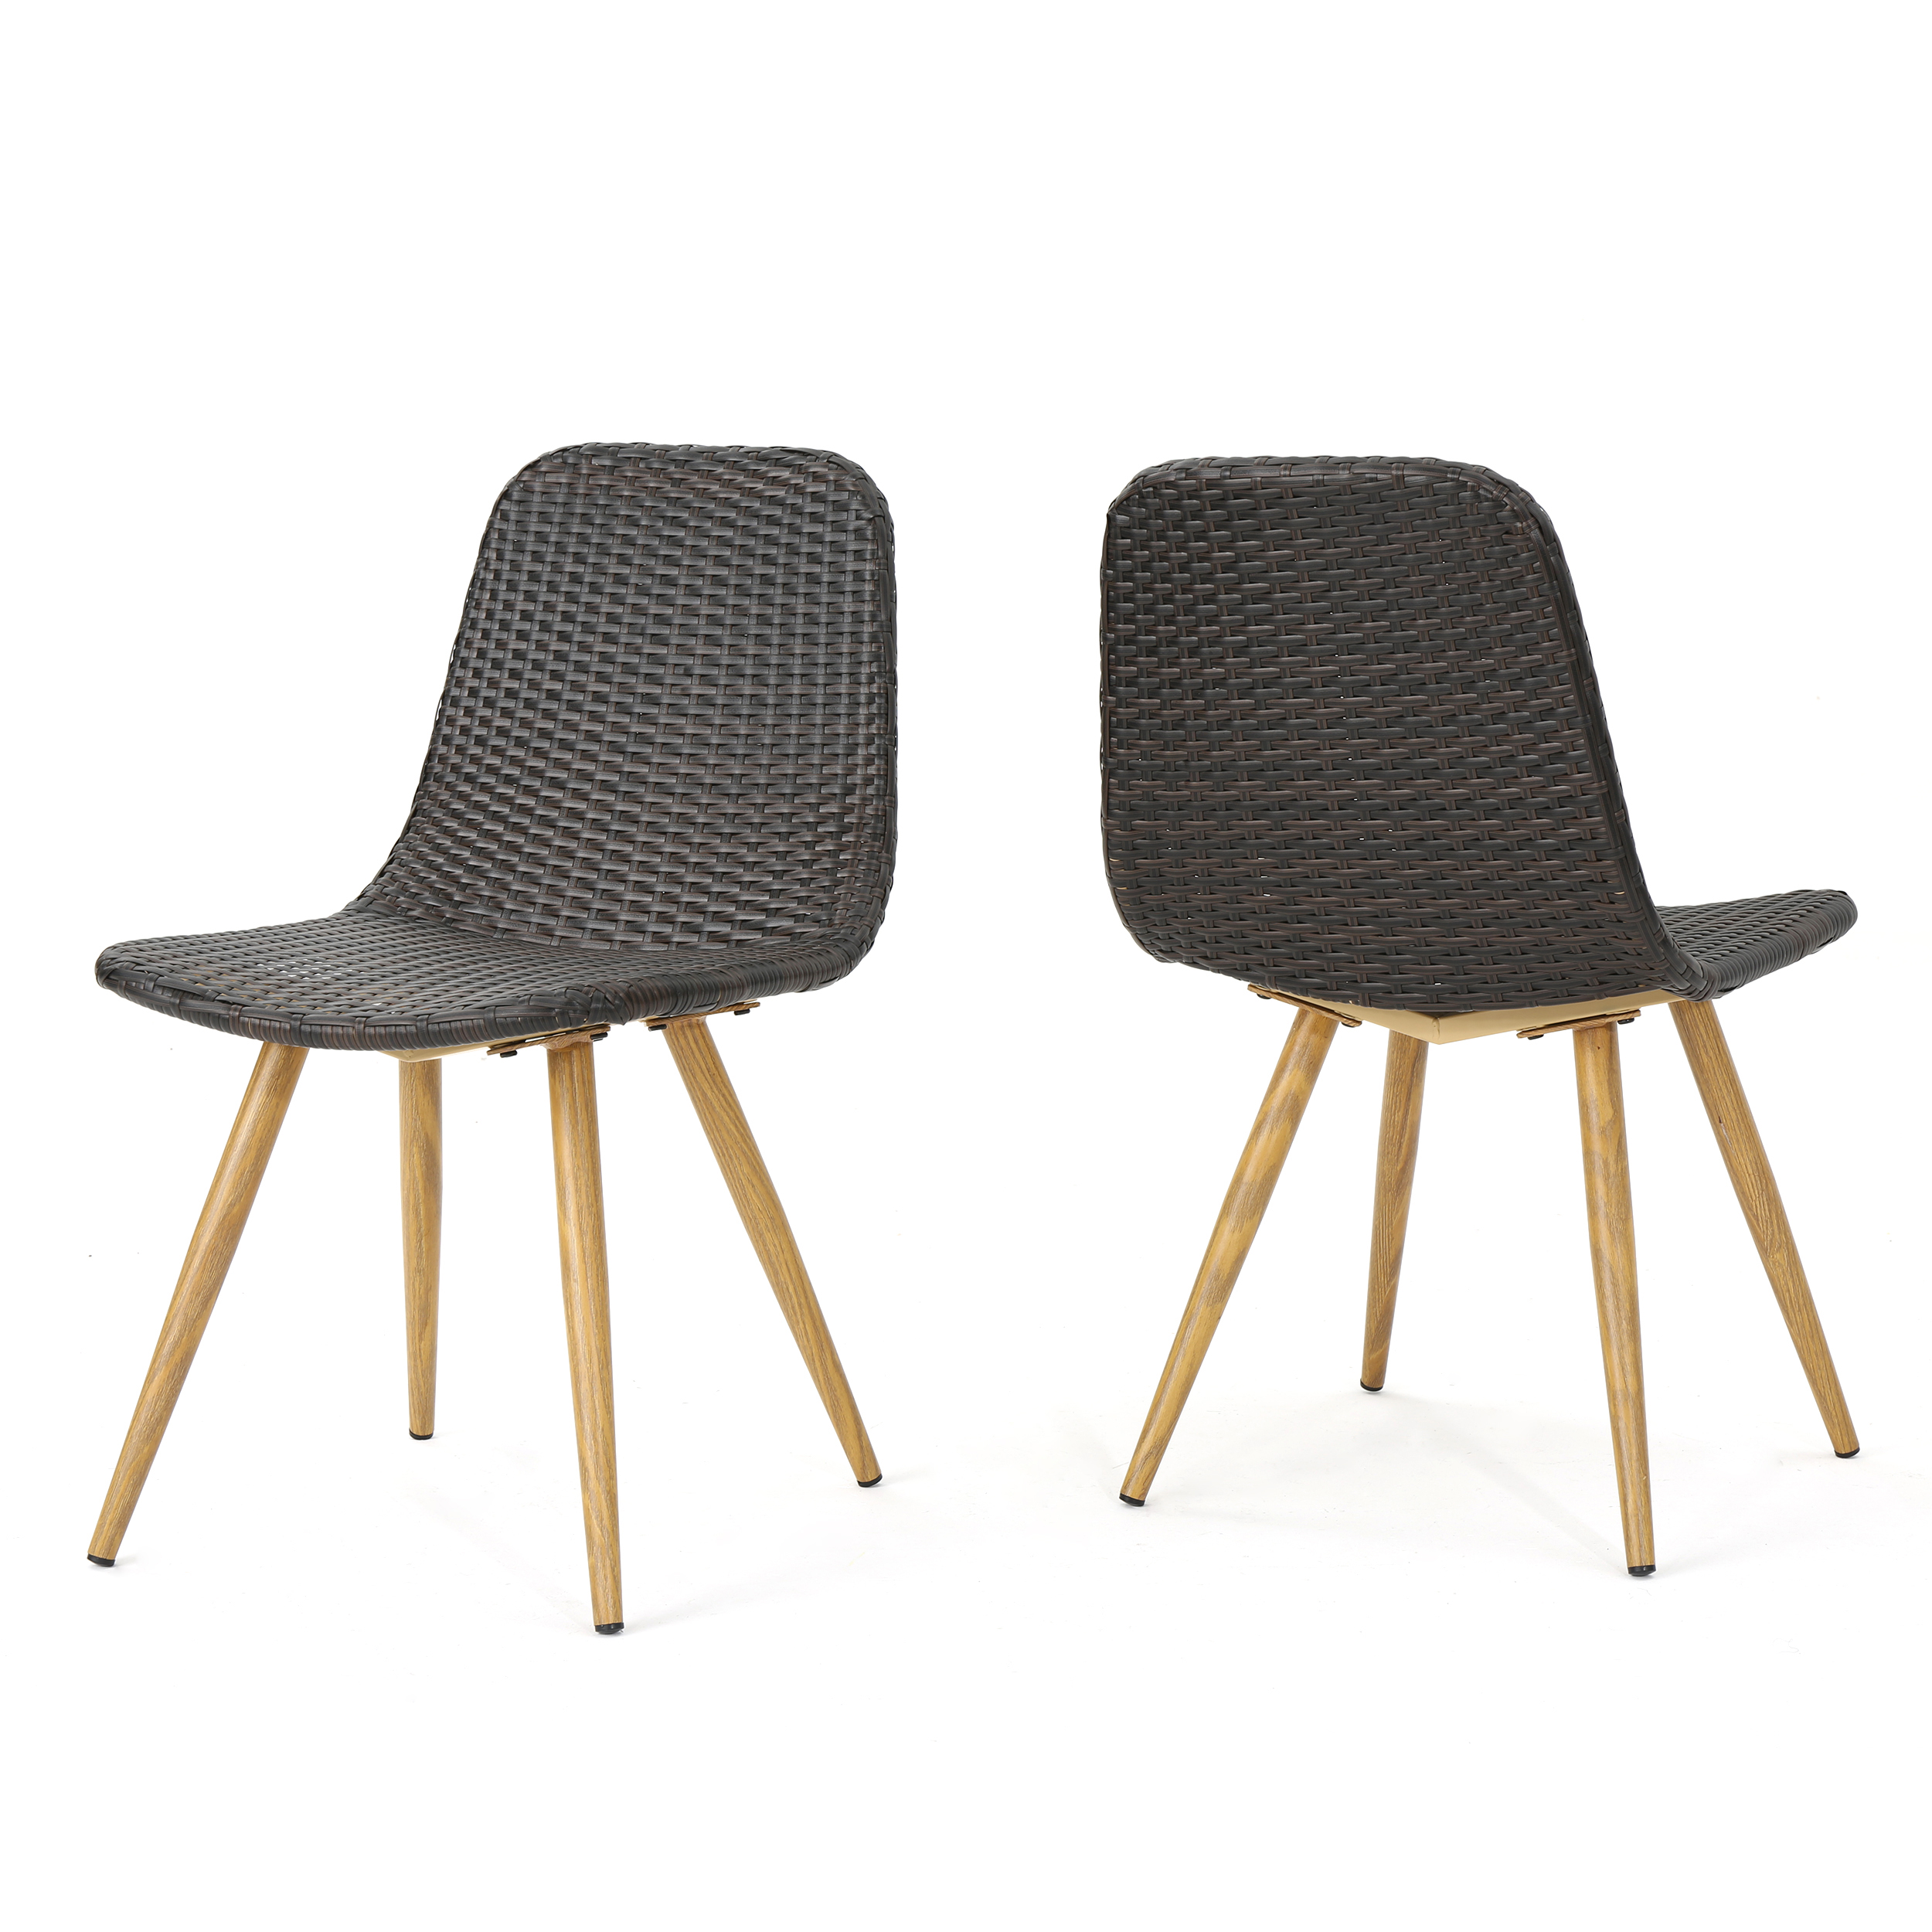 Rattan Chair Metal Legs: Gilda Outdoor Wicker Dining Chairs With Wood Finished